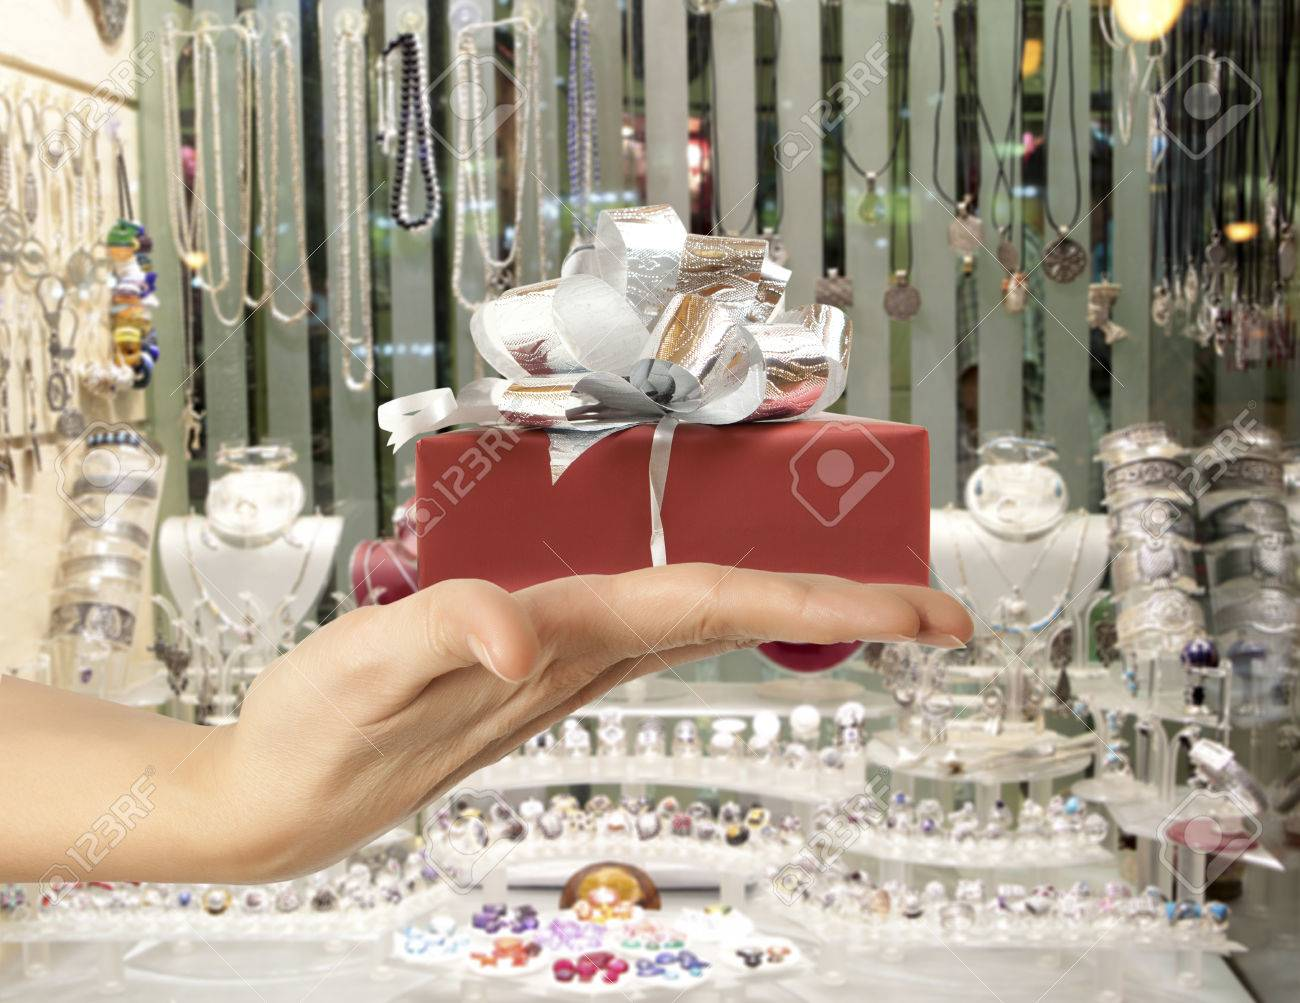 Female hand holding a gift in the background jewelry shop window - 50364504